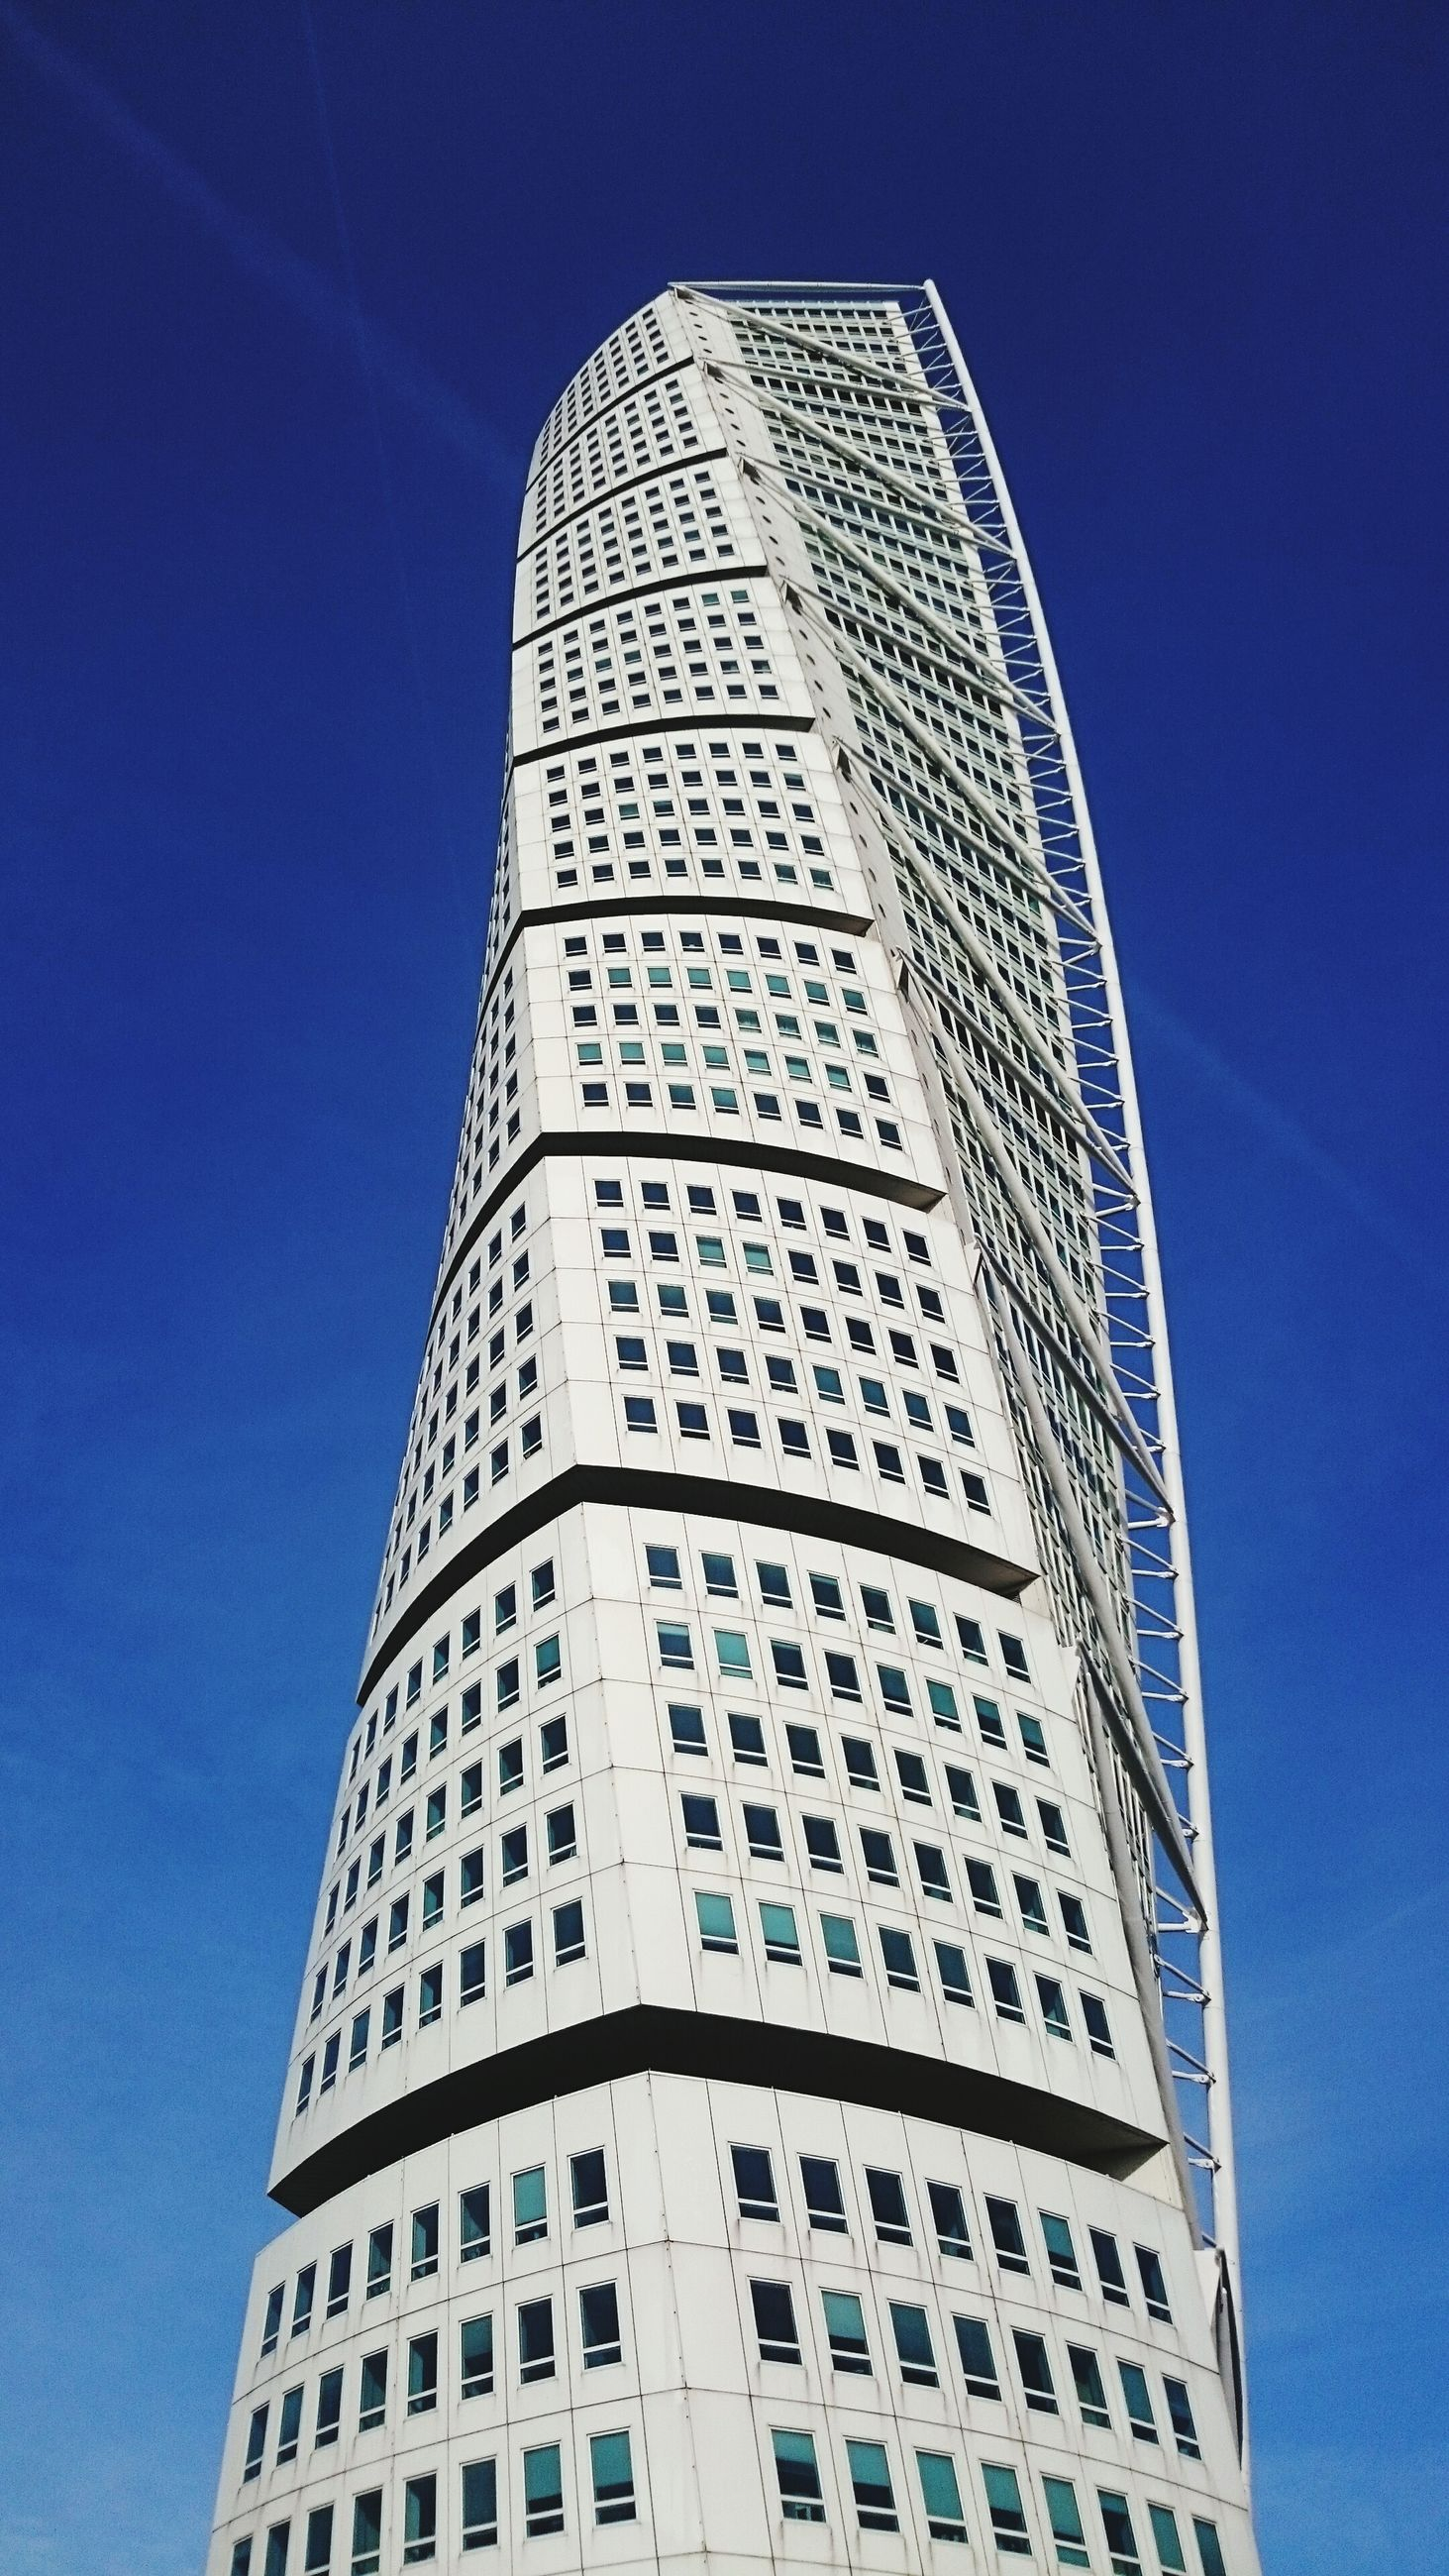 architecture, low angle view, building exterior, built structure, modern, tall - high, blue, skyscraper, city, office building, tower, clear sky, building, glass - material, sky, reflection, day, tall, outdoors, no people